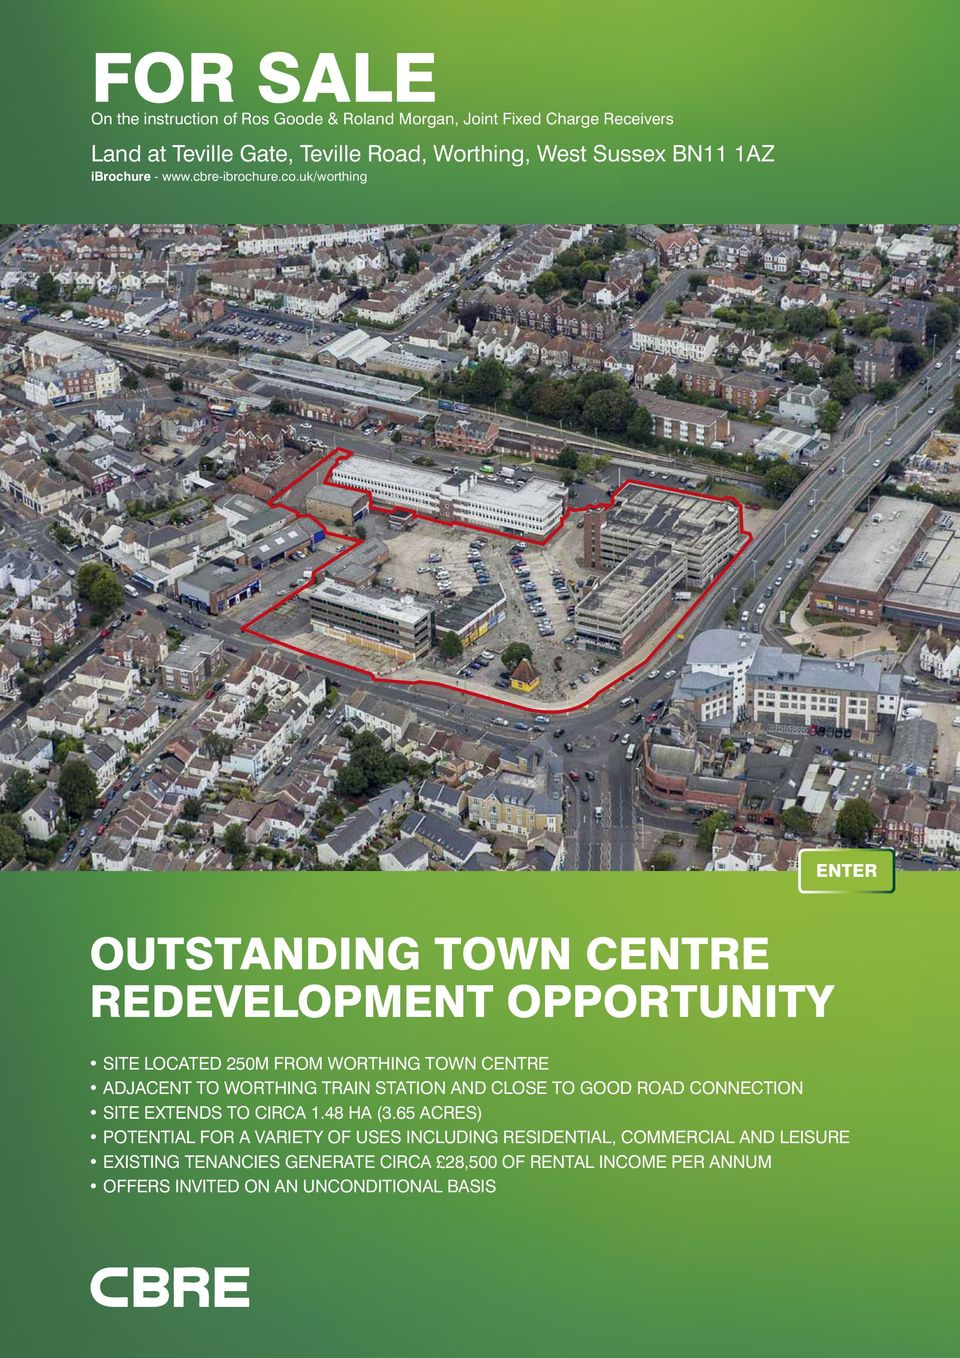 uk/worthing ENTER OUTSTANDING TOWN CENTRE REDEVELOPMENT OPPORTUNITY SITE LOCATED 250M FROM WORTHING TOWN CENTRE ADJACENT TO WORTHING TRAIN STATION